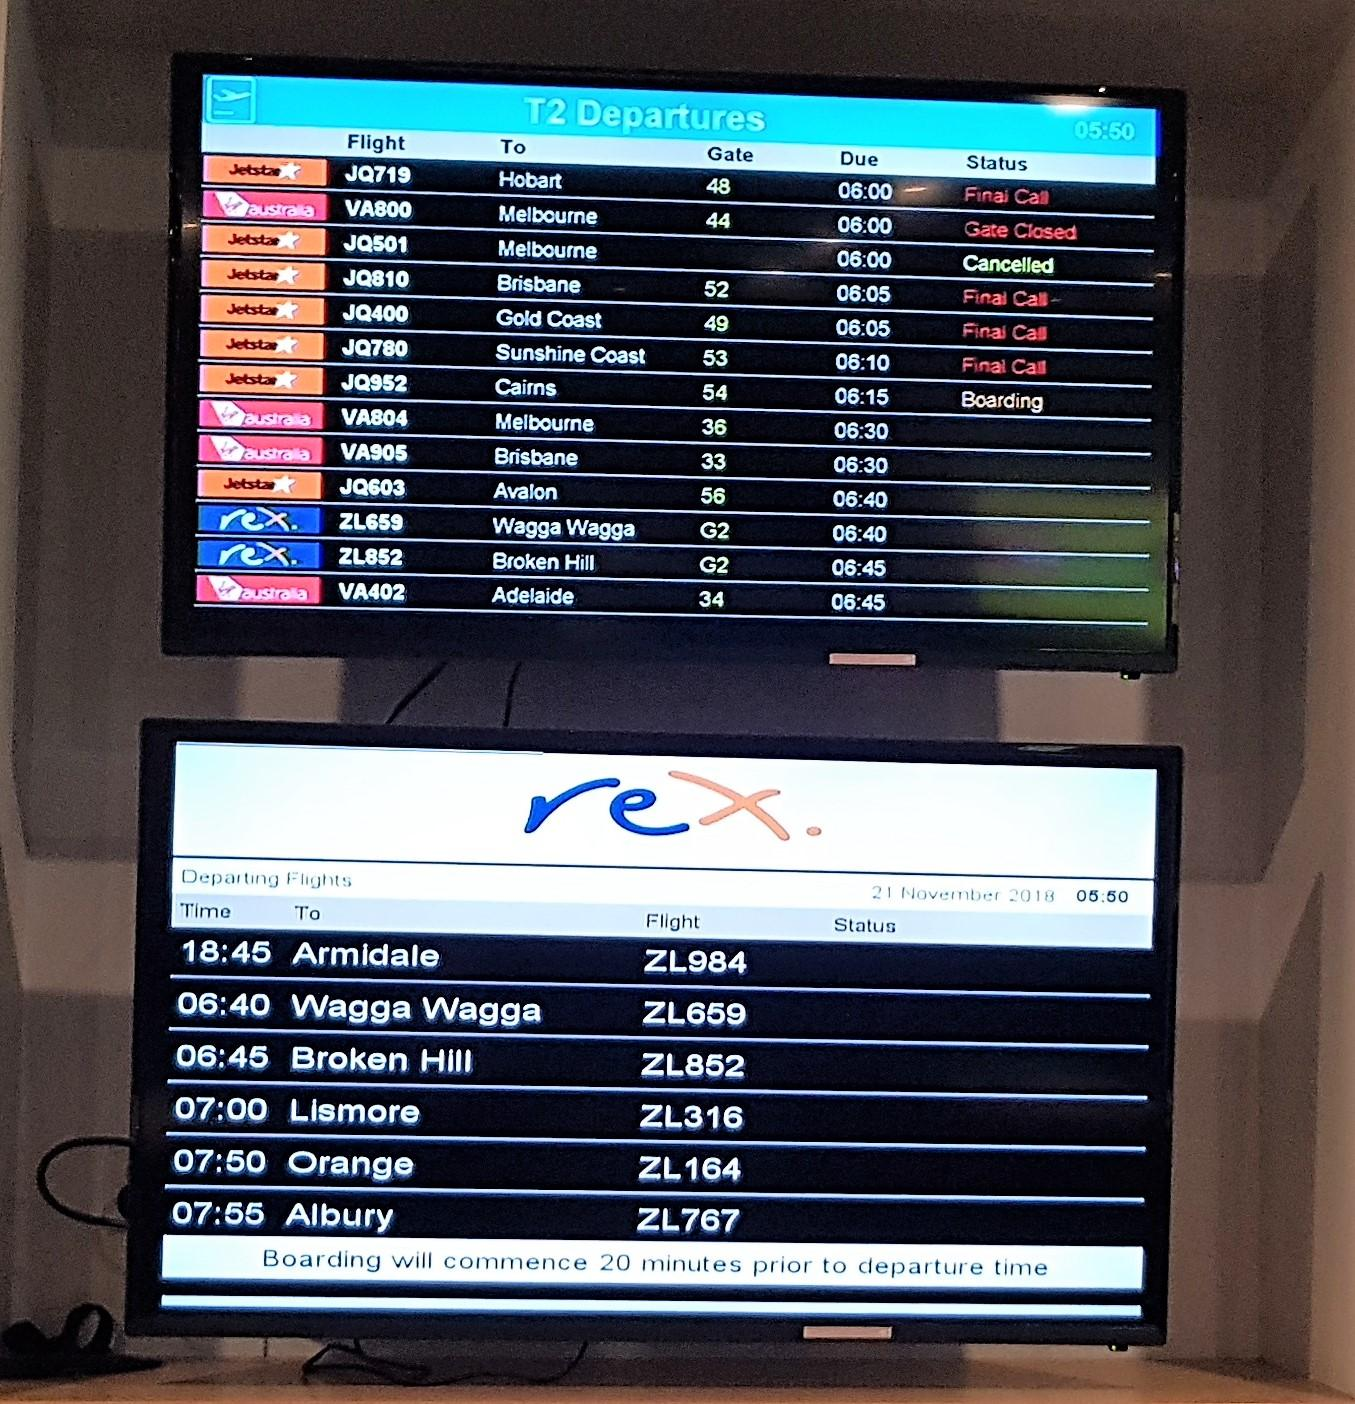 REX Lounge Sydney departure list screen